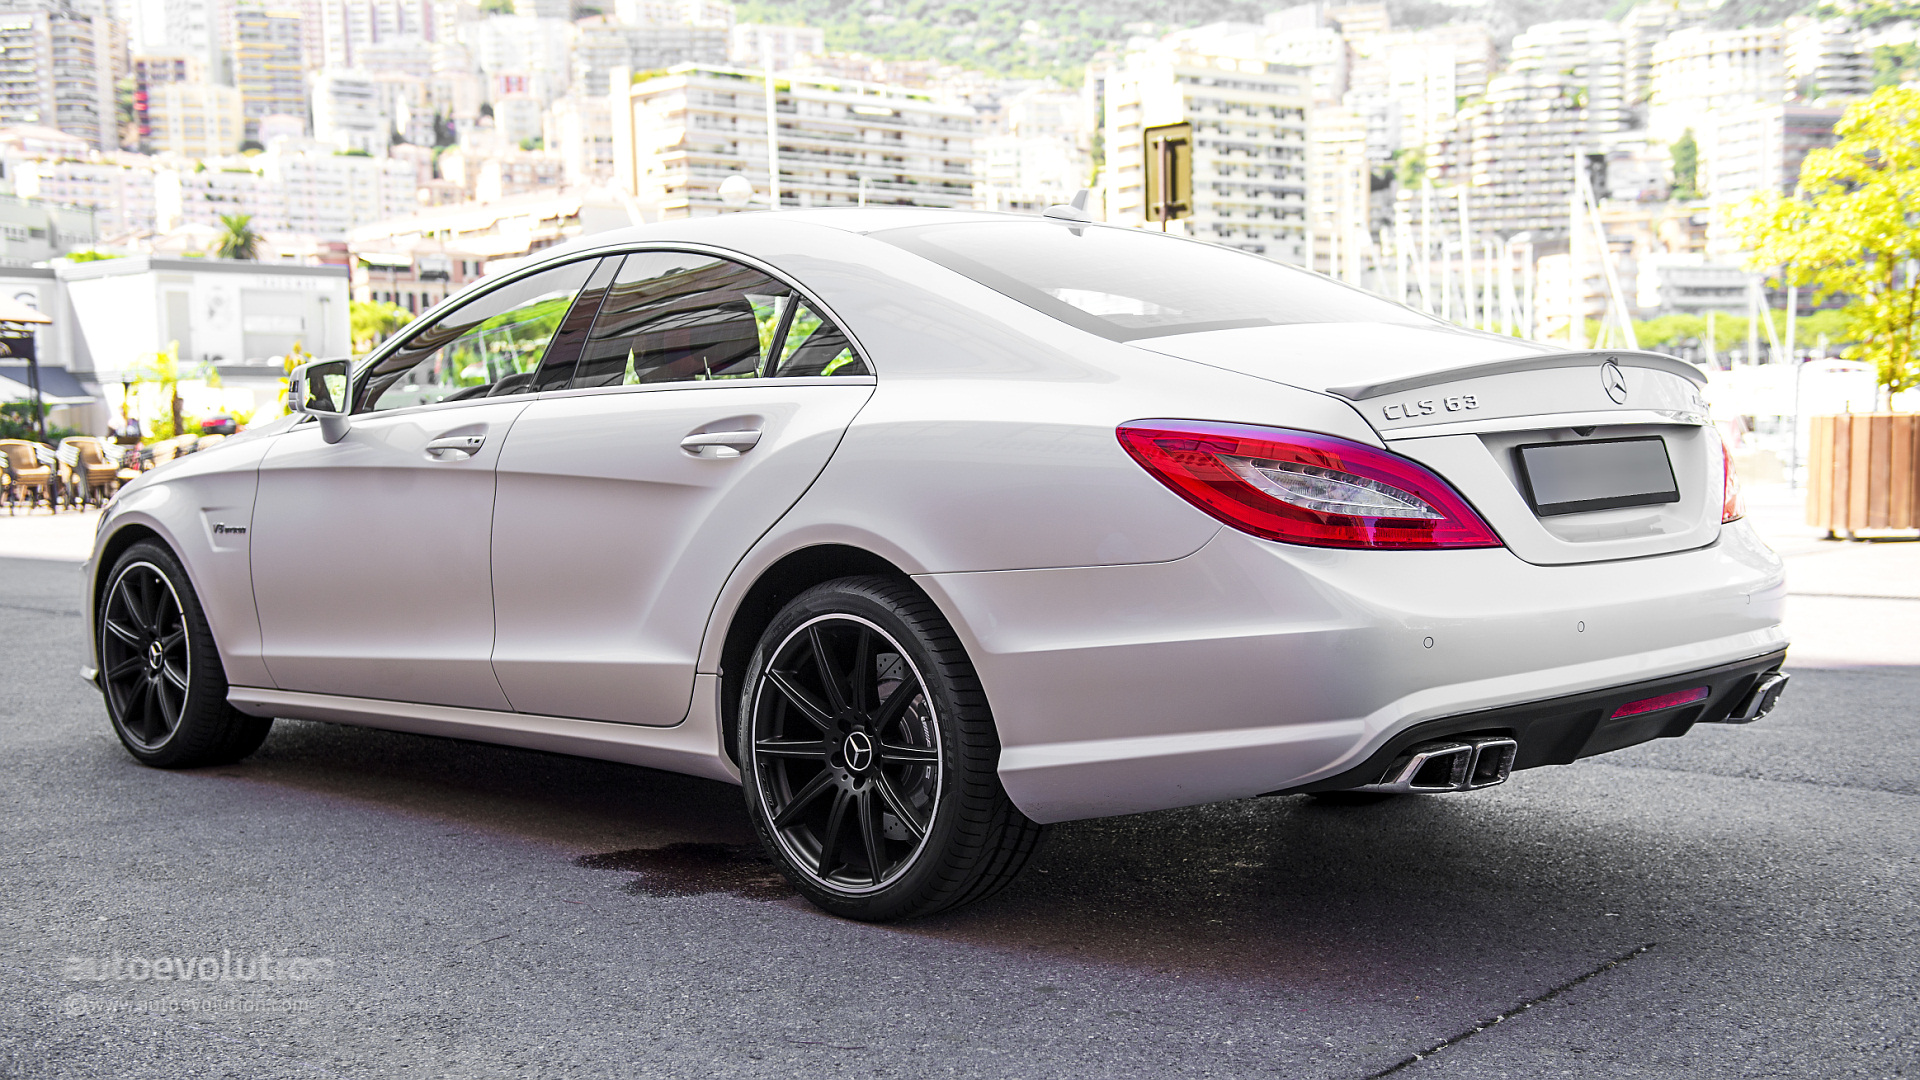 2014 MERCEDES-BENZ CLS63 AMG 4Matic Review (Page 6) - autoevolution